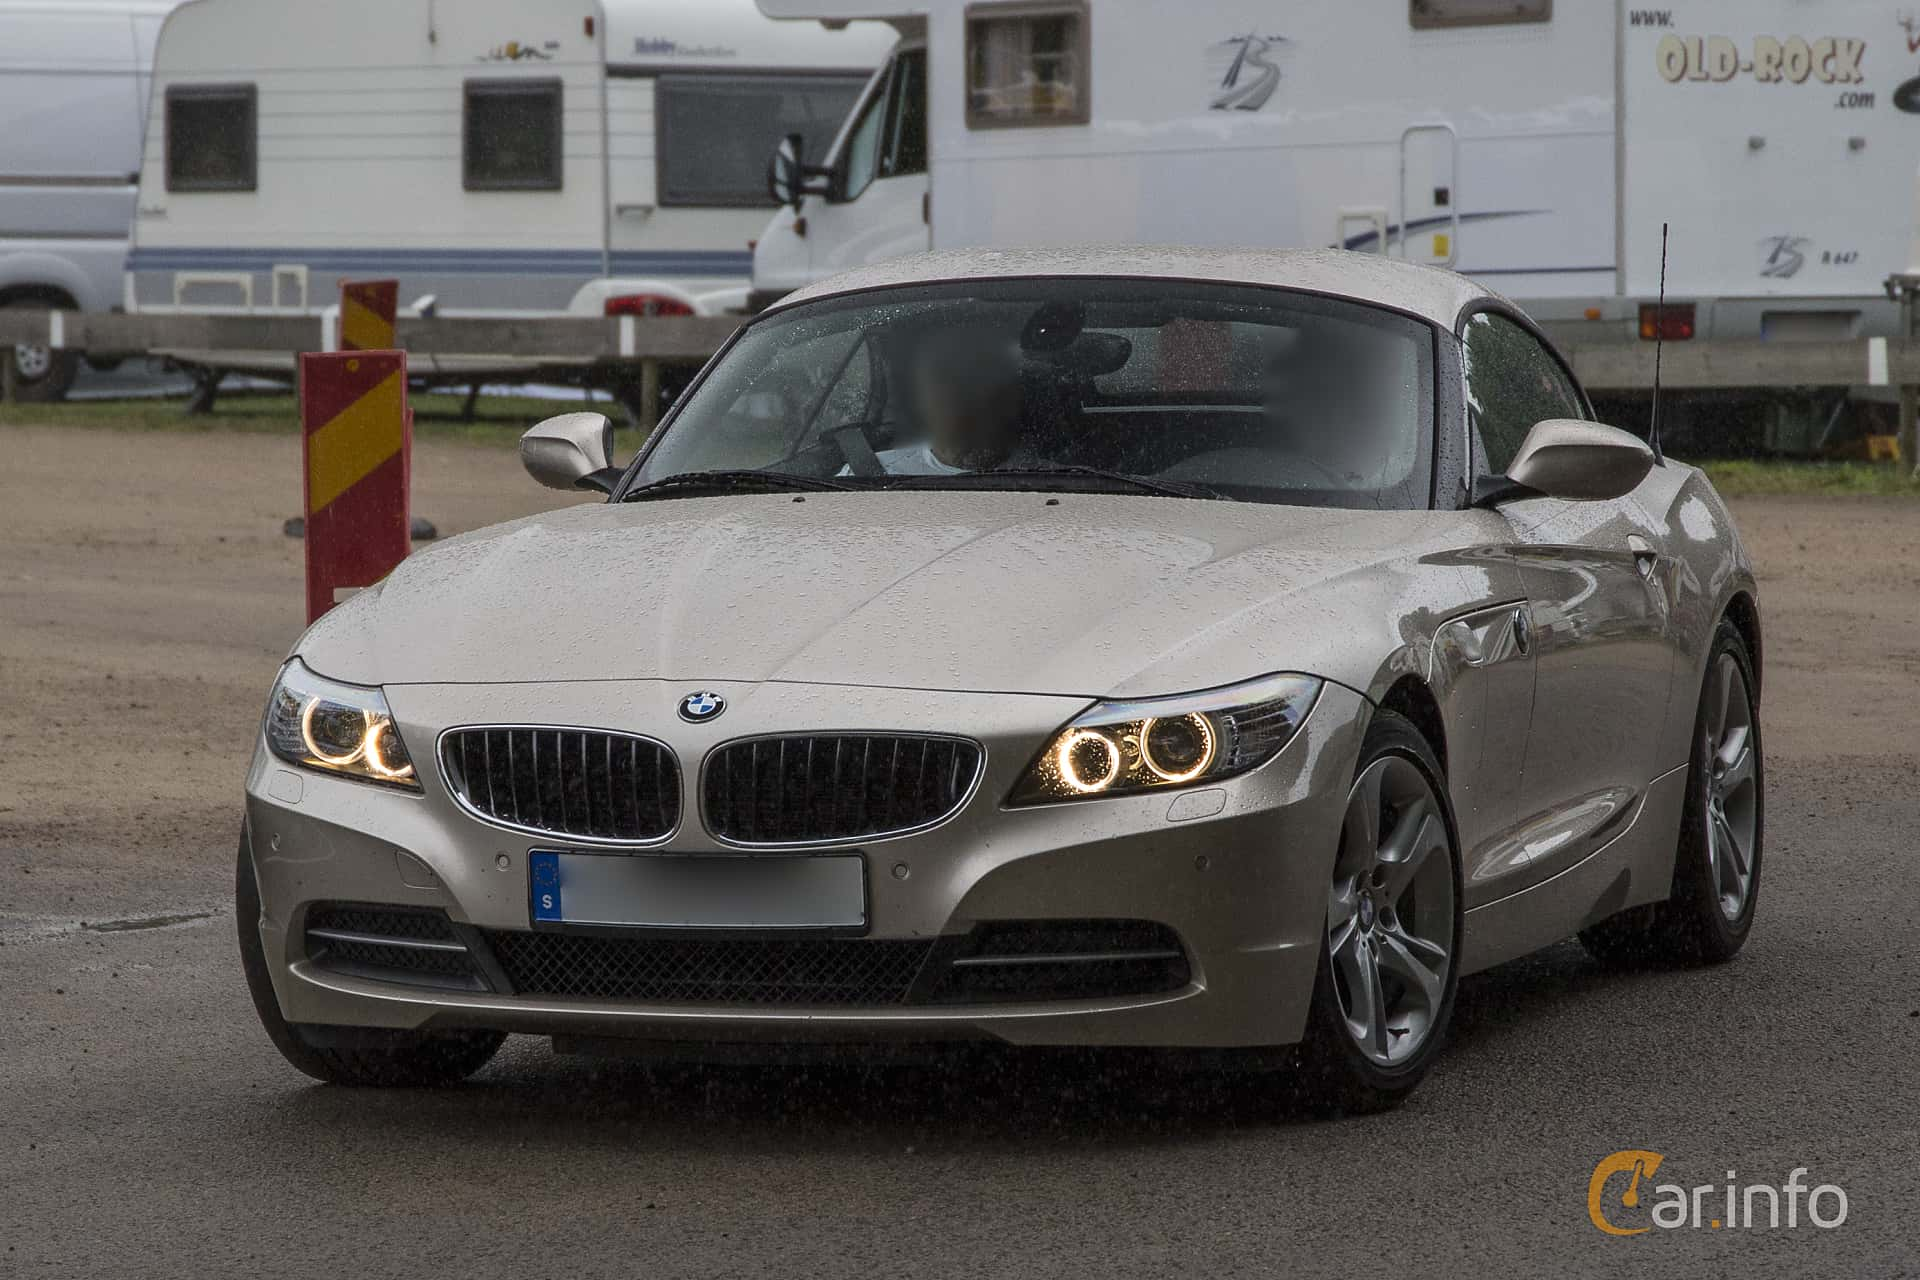 1 images of bmw z4 sdrive23i 2 5 manual 204hp 2010 by pelle rh car info BMW Motorcycle Manuals 2003 BMW Z4 Repair Manual